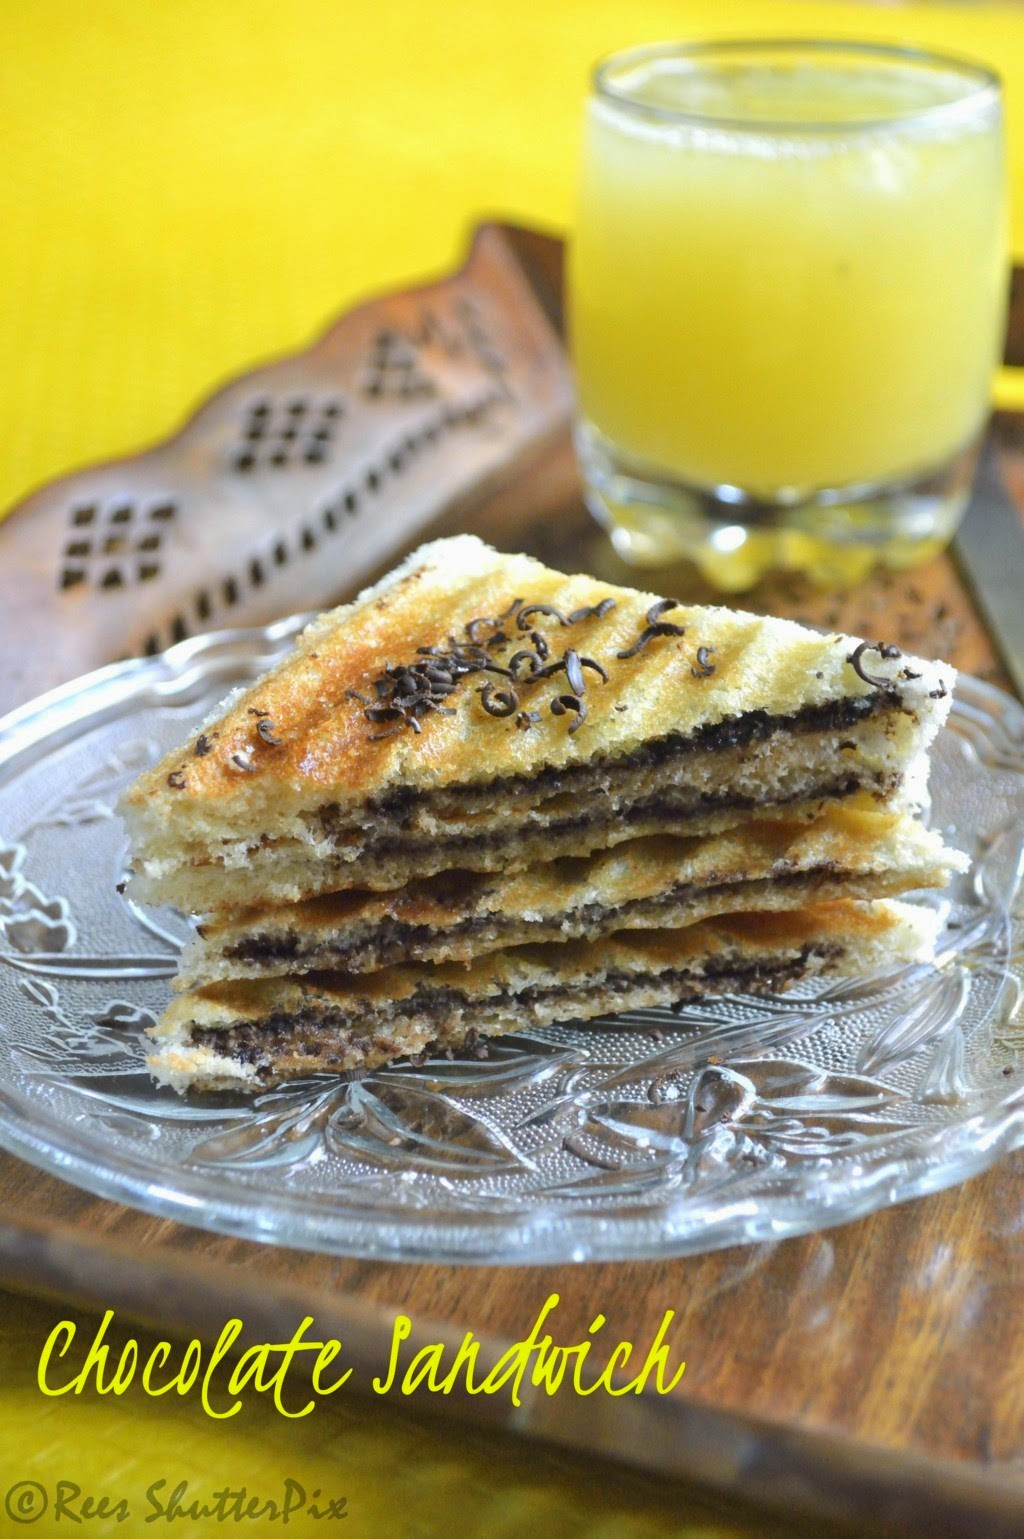 Grilled Chocolate Sandwich with Sweet Lime Juice Recipe,Brench Recipes,easy sandwich ideas, grilled sandwich recipes, chocolate sandwiches recipes, grilled chocolate sandwich recipes. kids favourite recipes, mosambi juice recipe, sathukudi juice recipe, sweet lime juice recipe